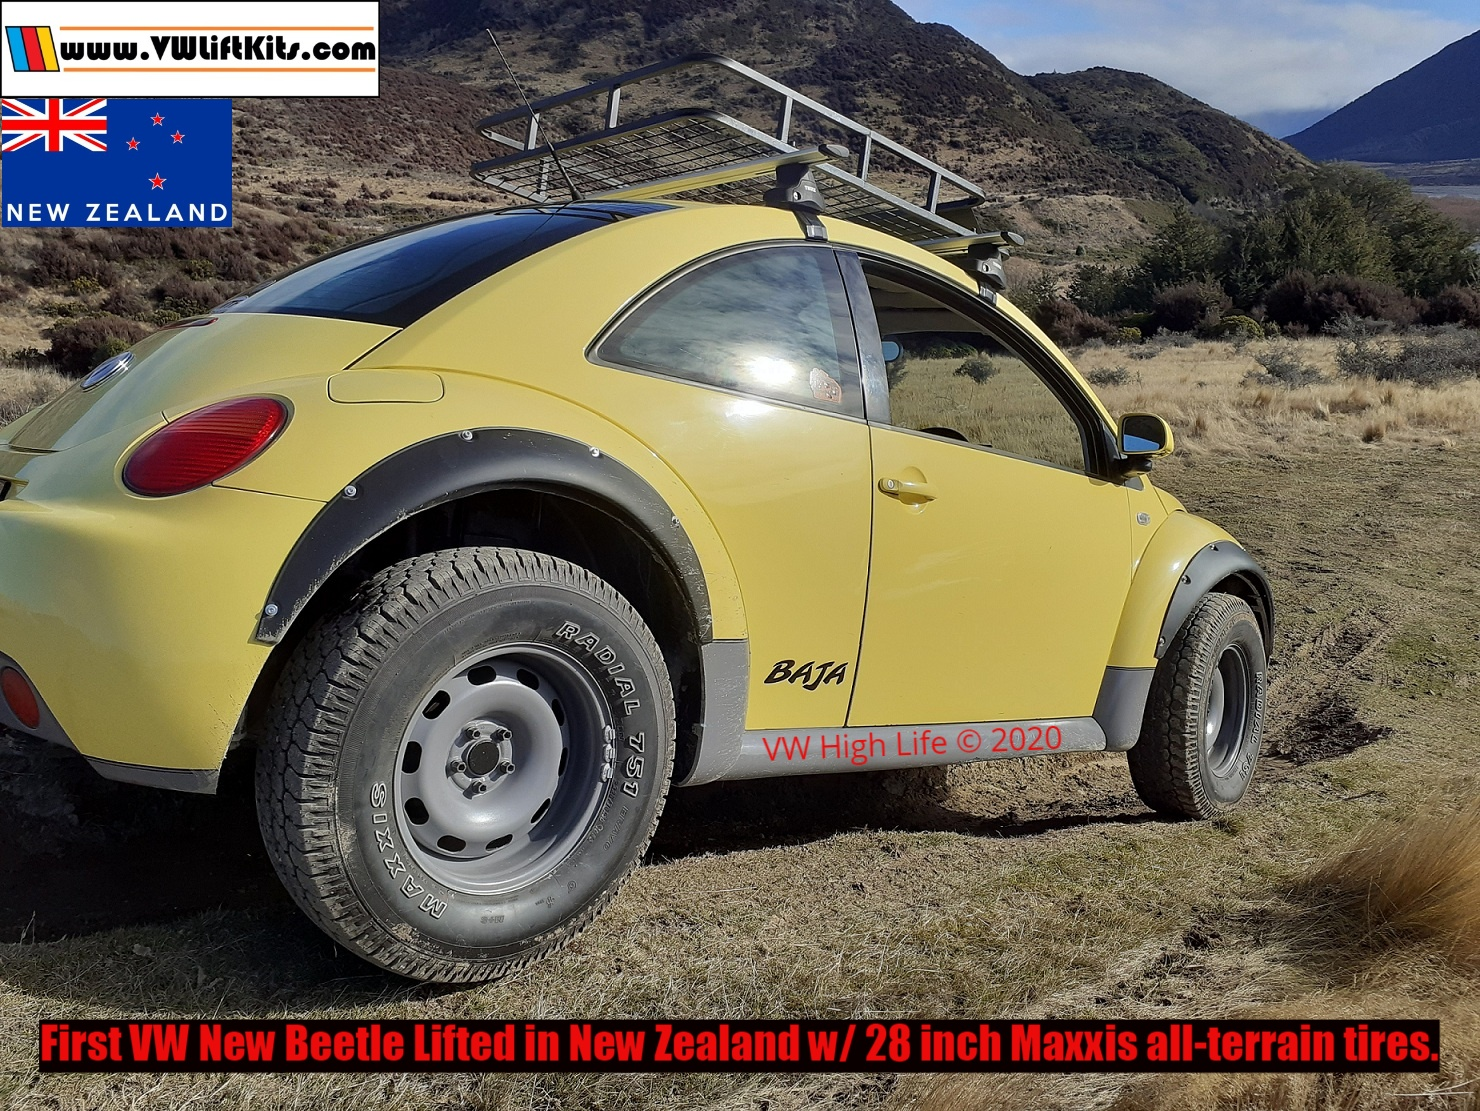 Richard's infamous COVID Beetle wheeling in KiwiLand.